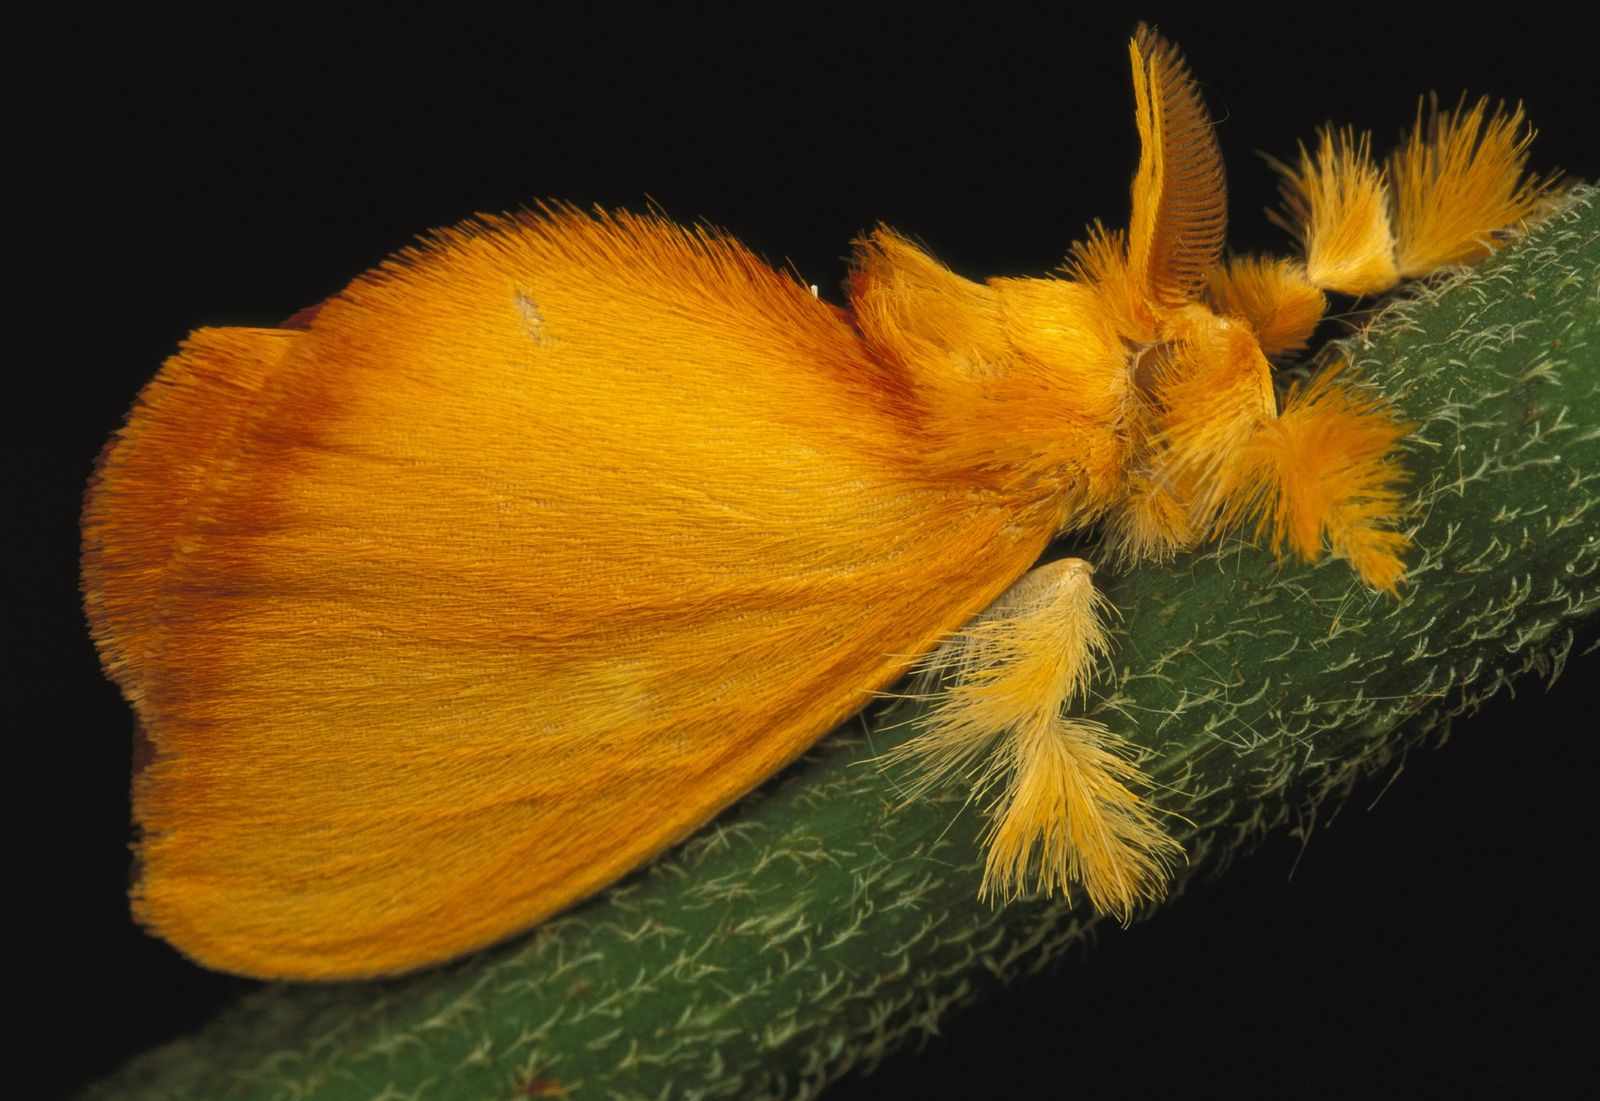 Marvellous moths - in pictures